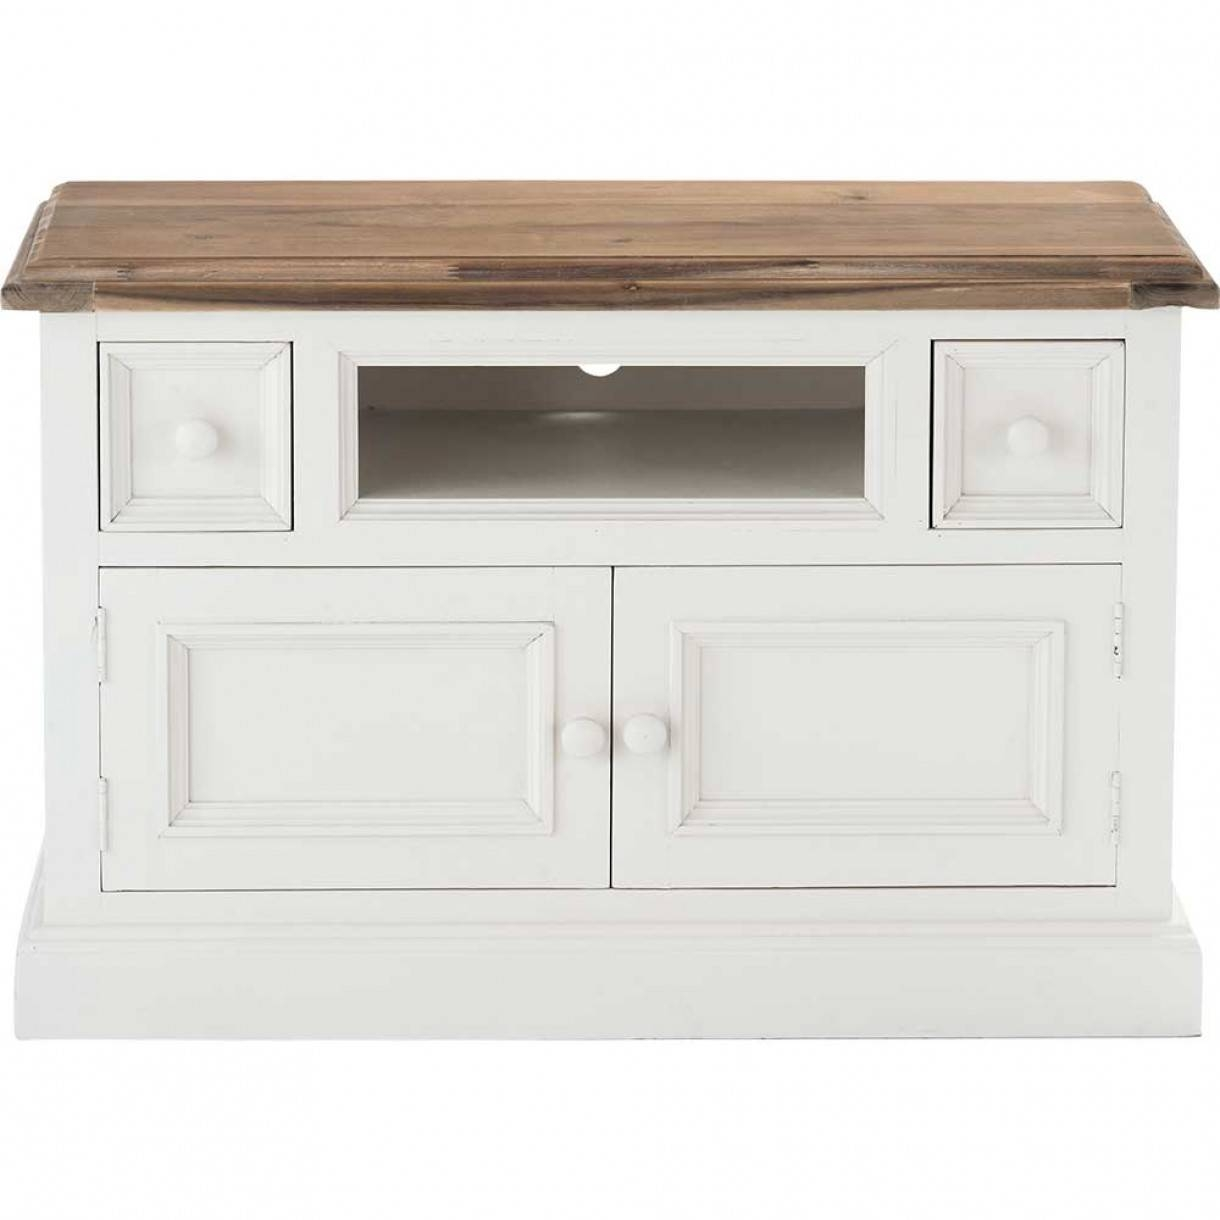 Perfect Small White Tv Cabinet 79 For Best Interior With Small Regarding Small White Tv Cabinets (Photo 6 of 15)